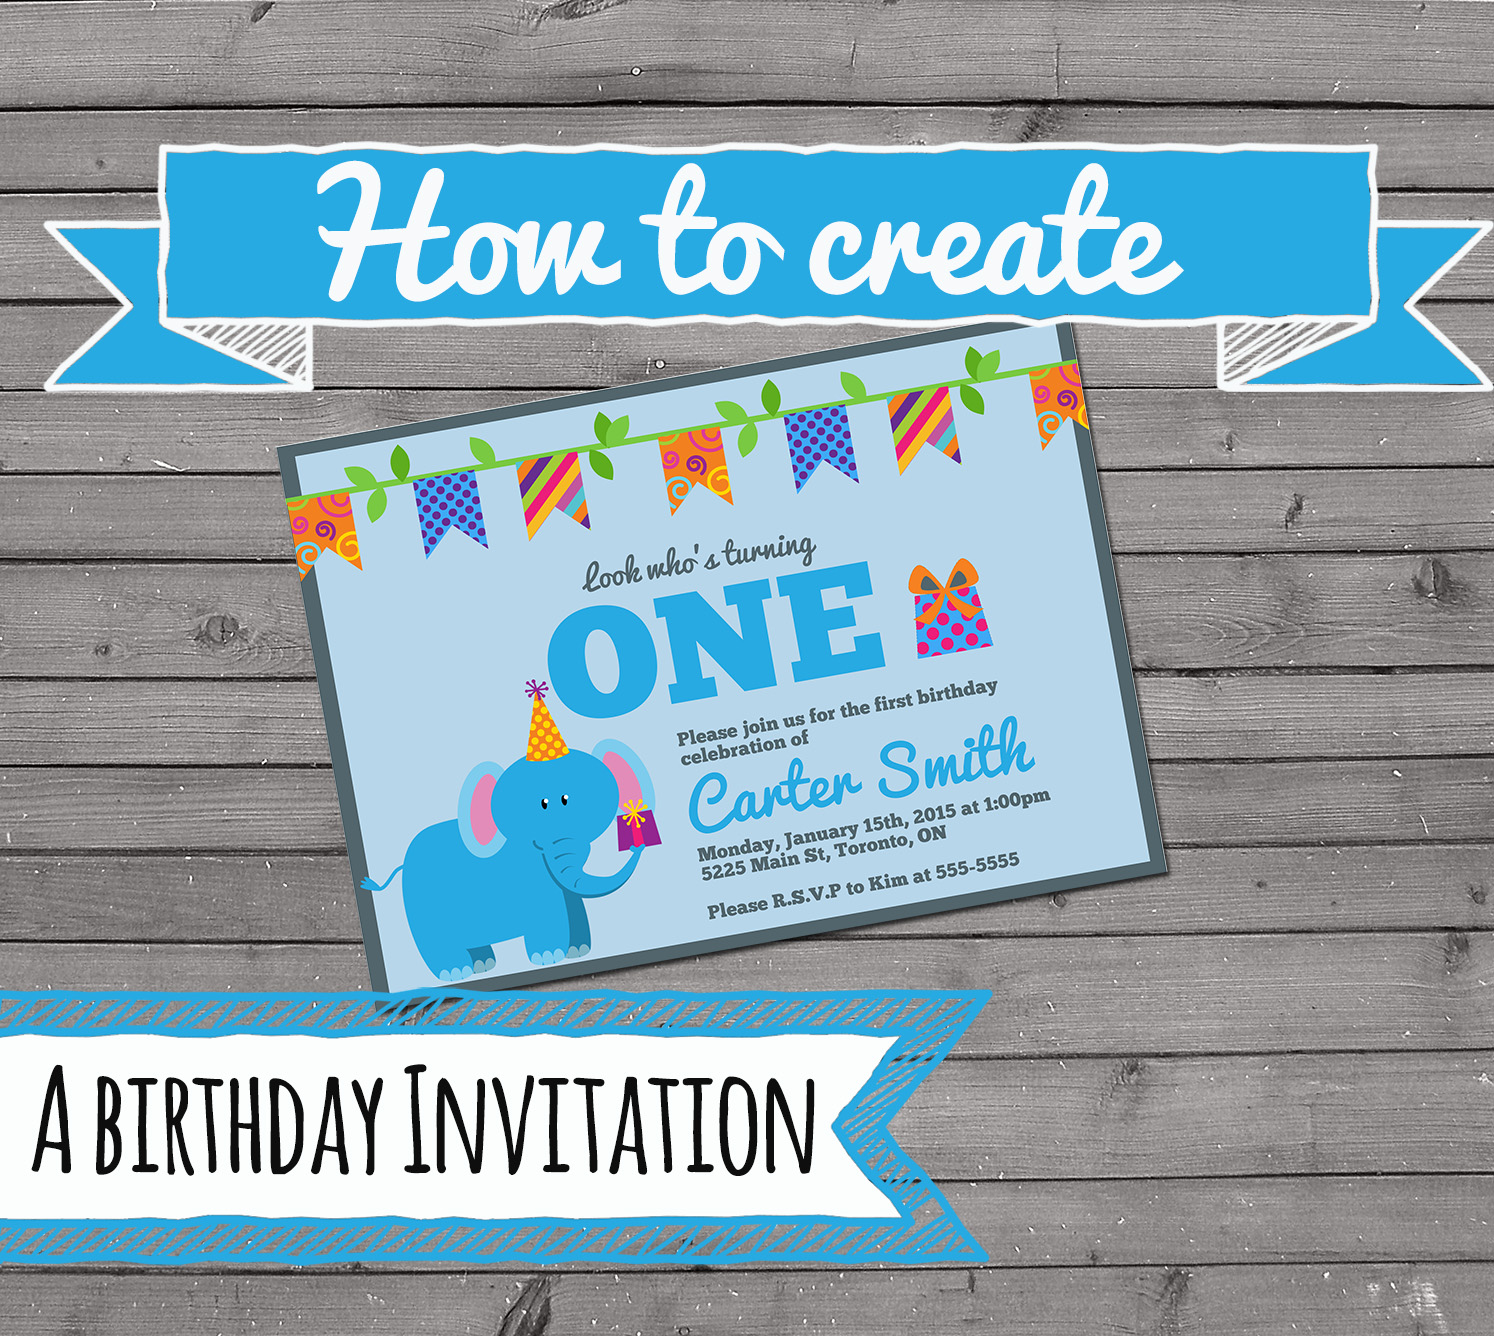 Create Birthday Party Invitations correctly perfect ideas for your invitation layout